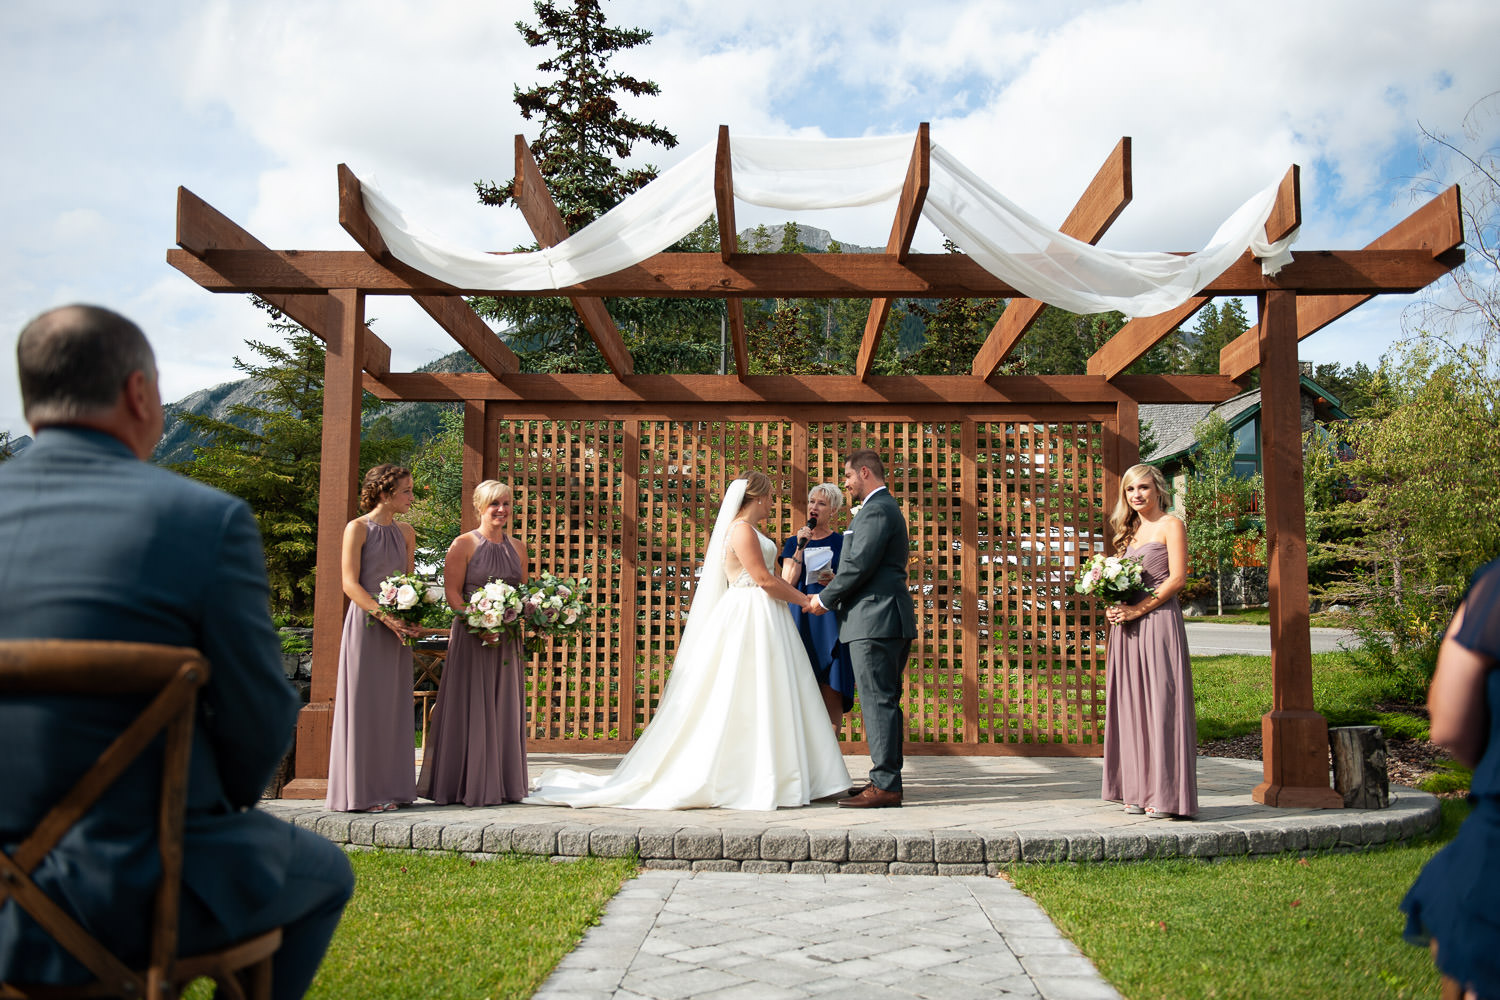 Outdoor wedding ceremony at Creekside Villa wedding captured by Tara Whittaker Photography